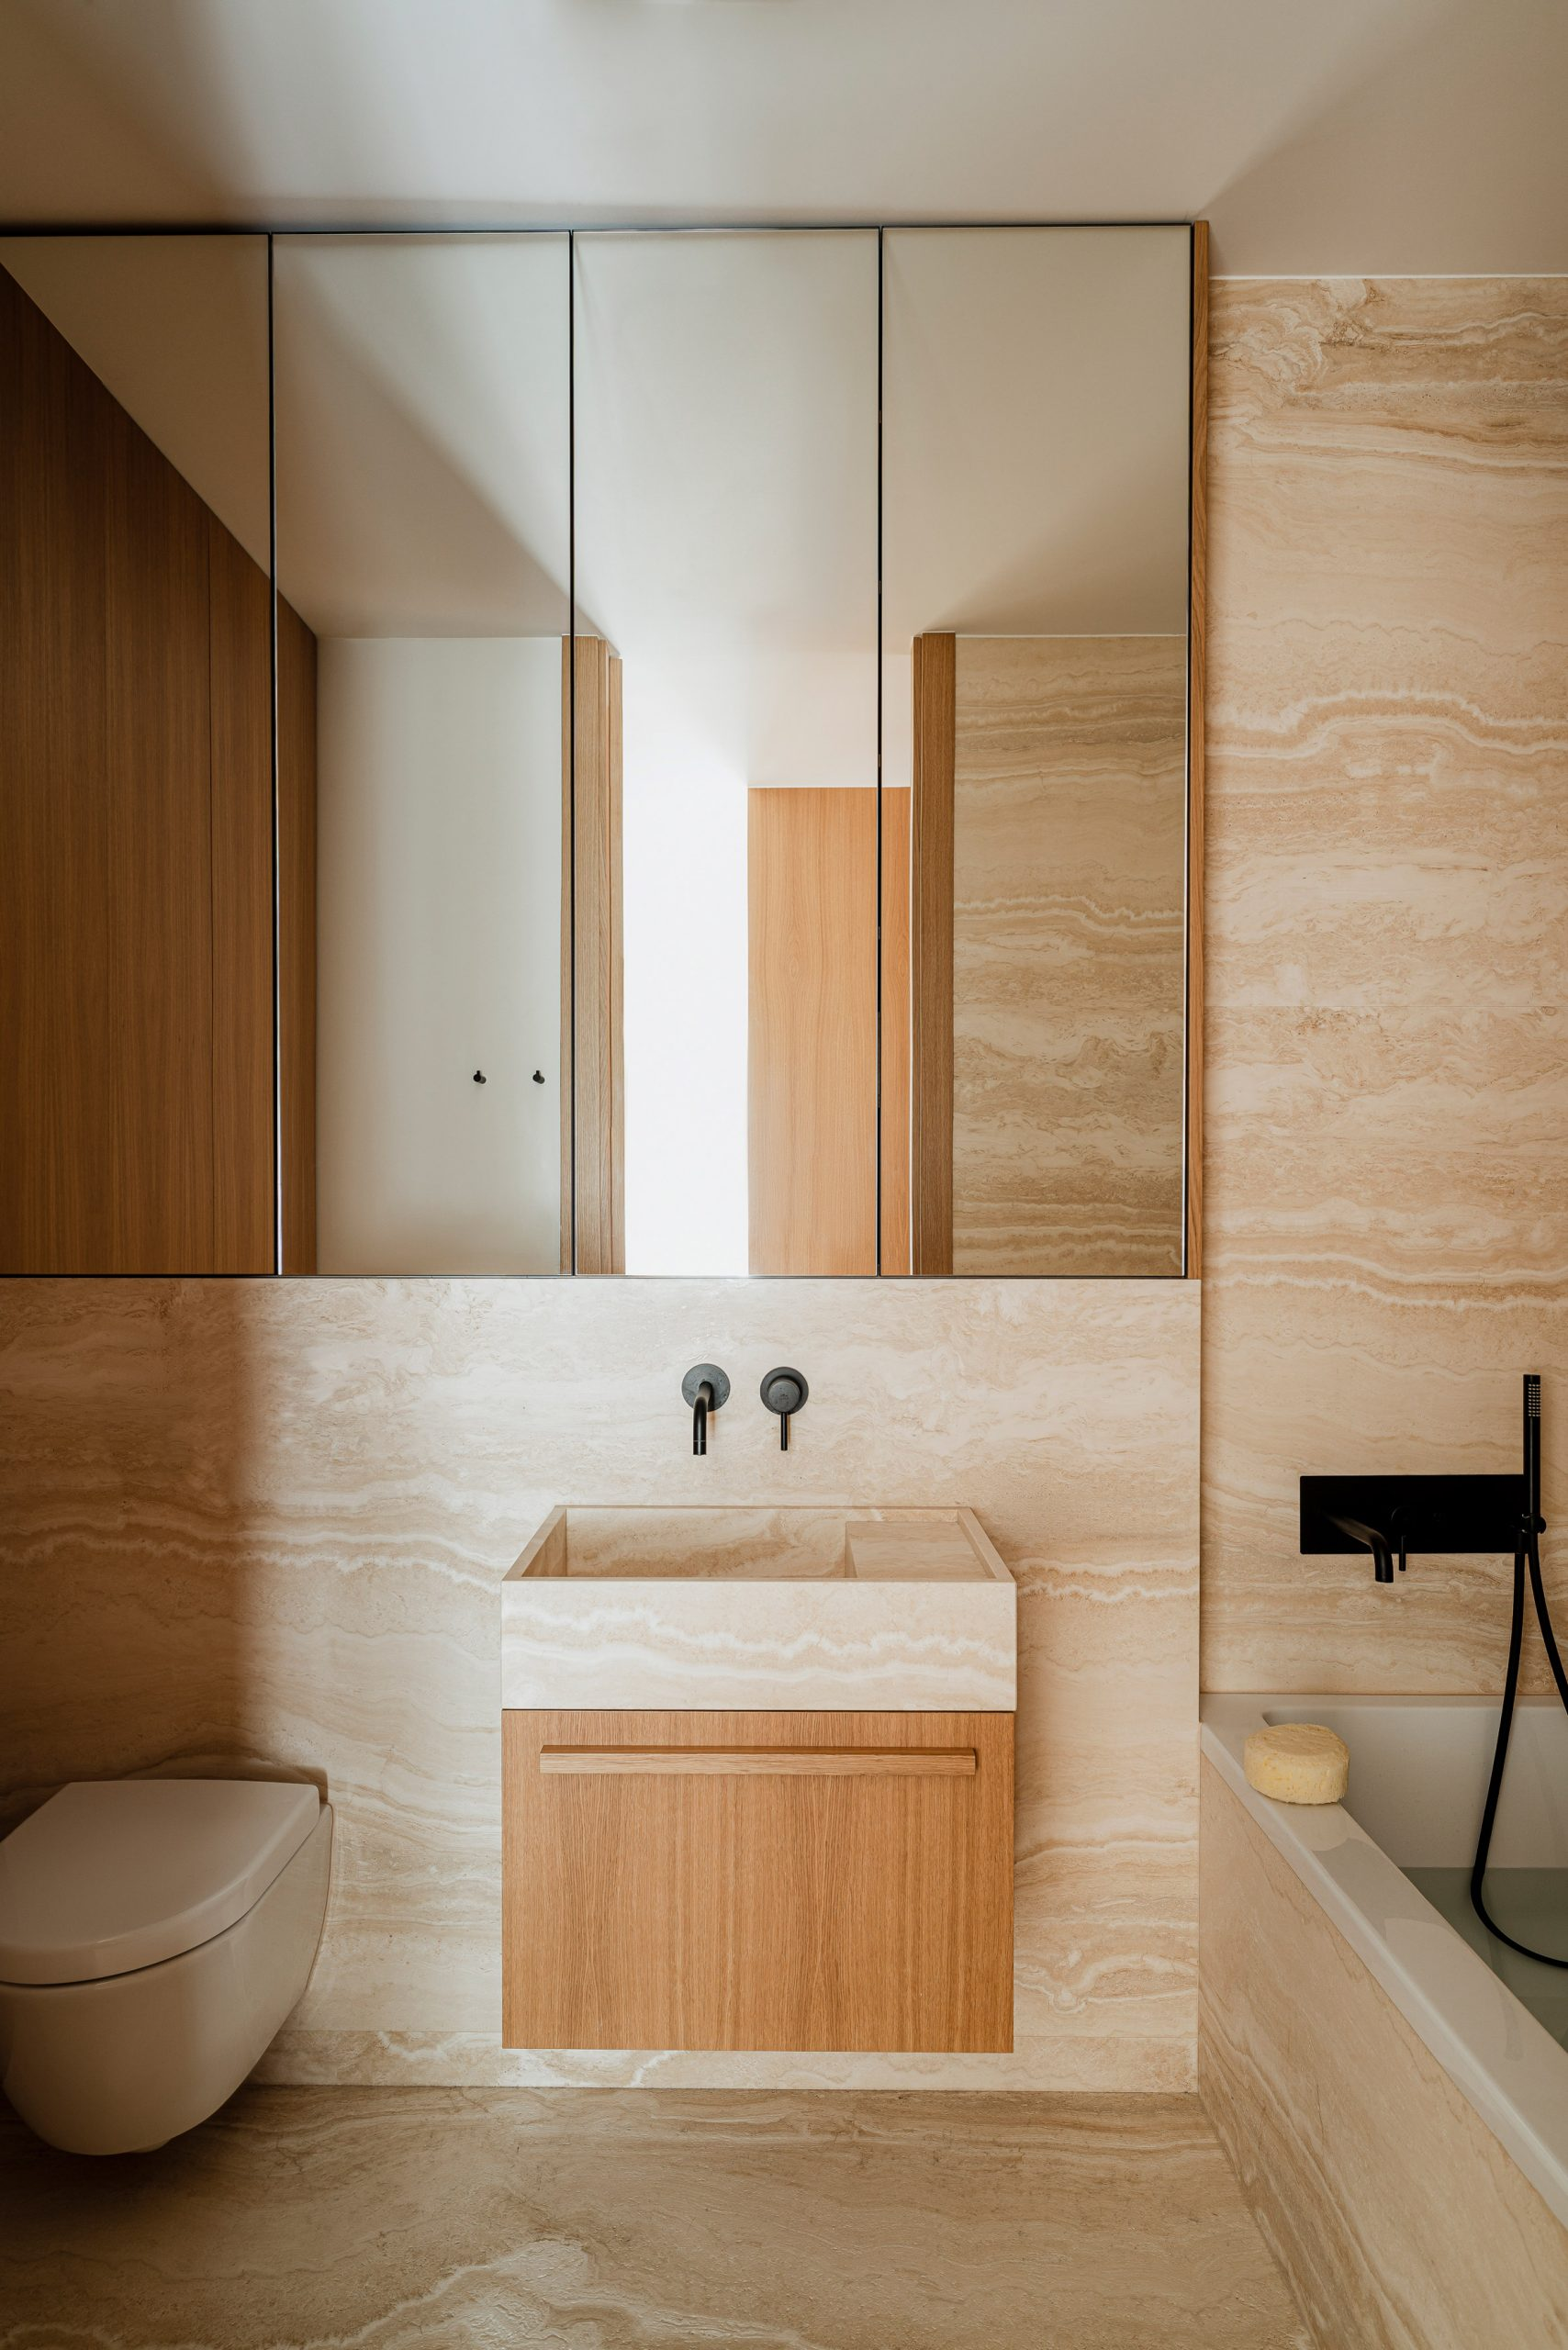 Travertine marble bathroom of Botaniczna Apartment by Agnieszka Owsiany Studio